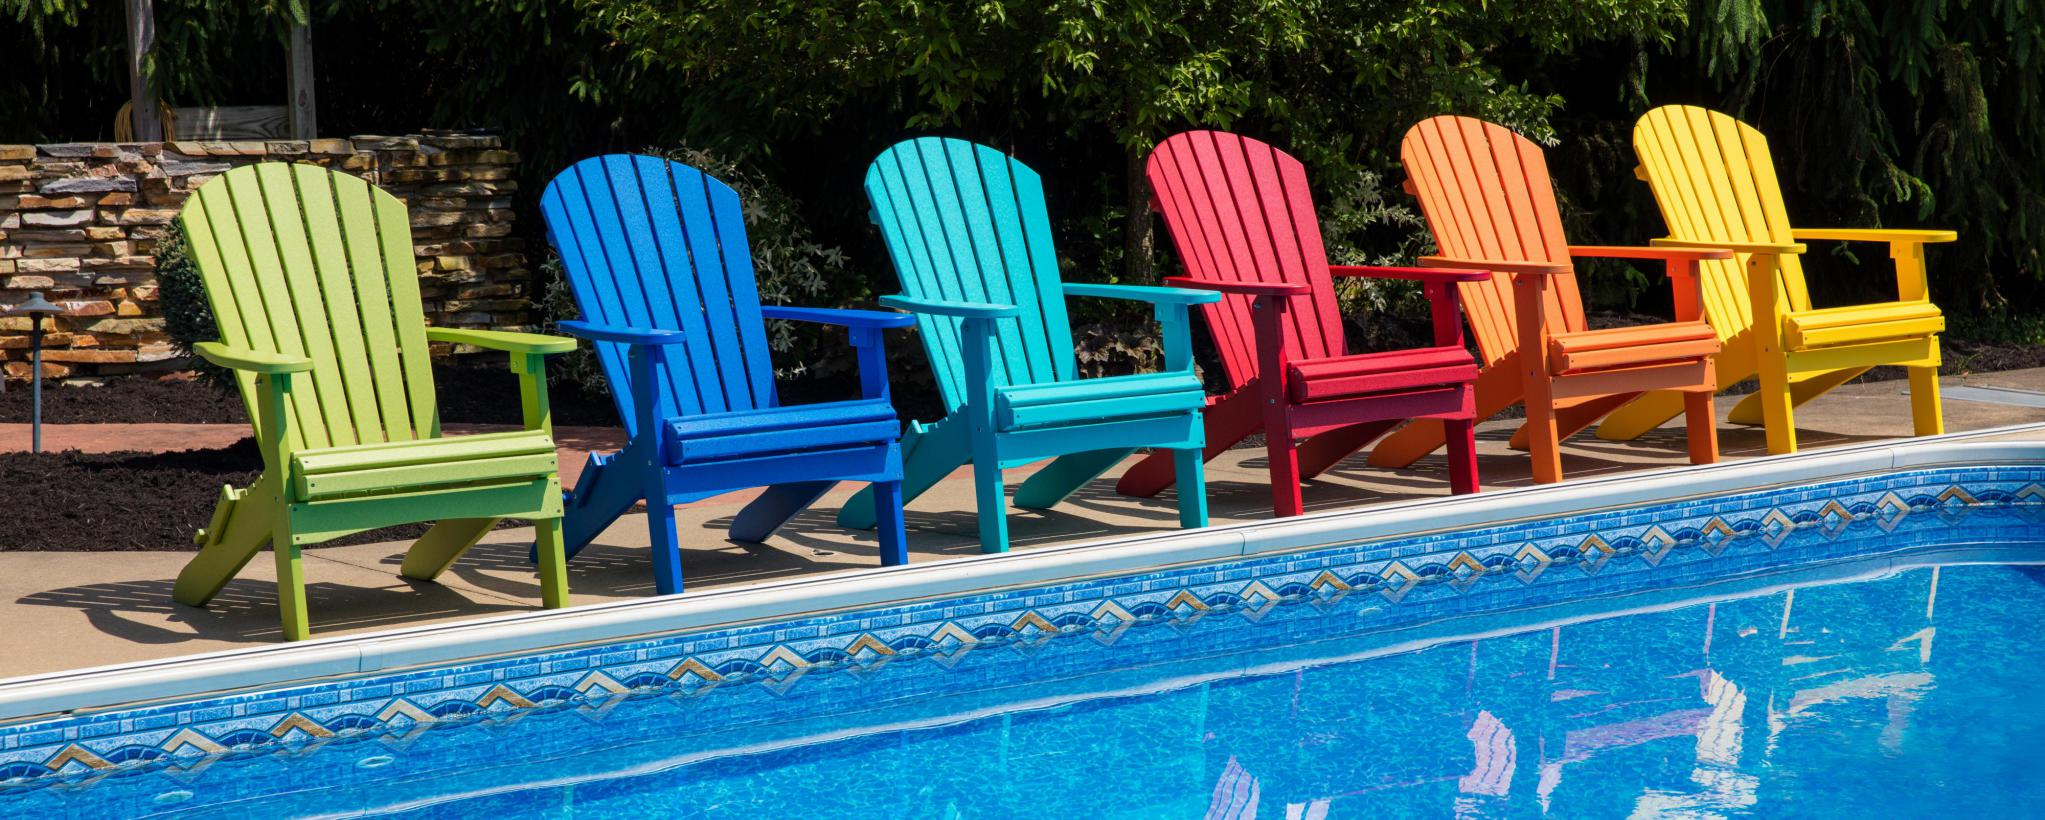 Folding Adirondacks in front of pool